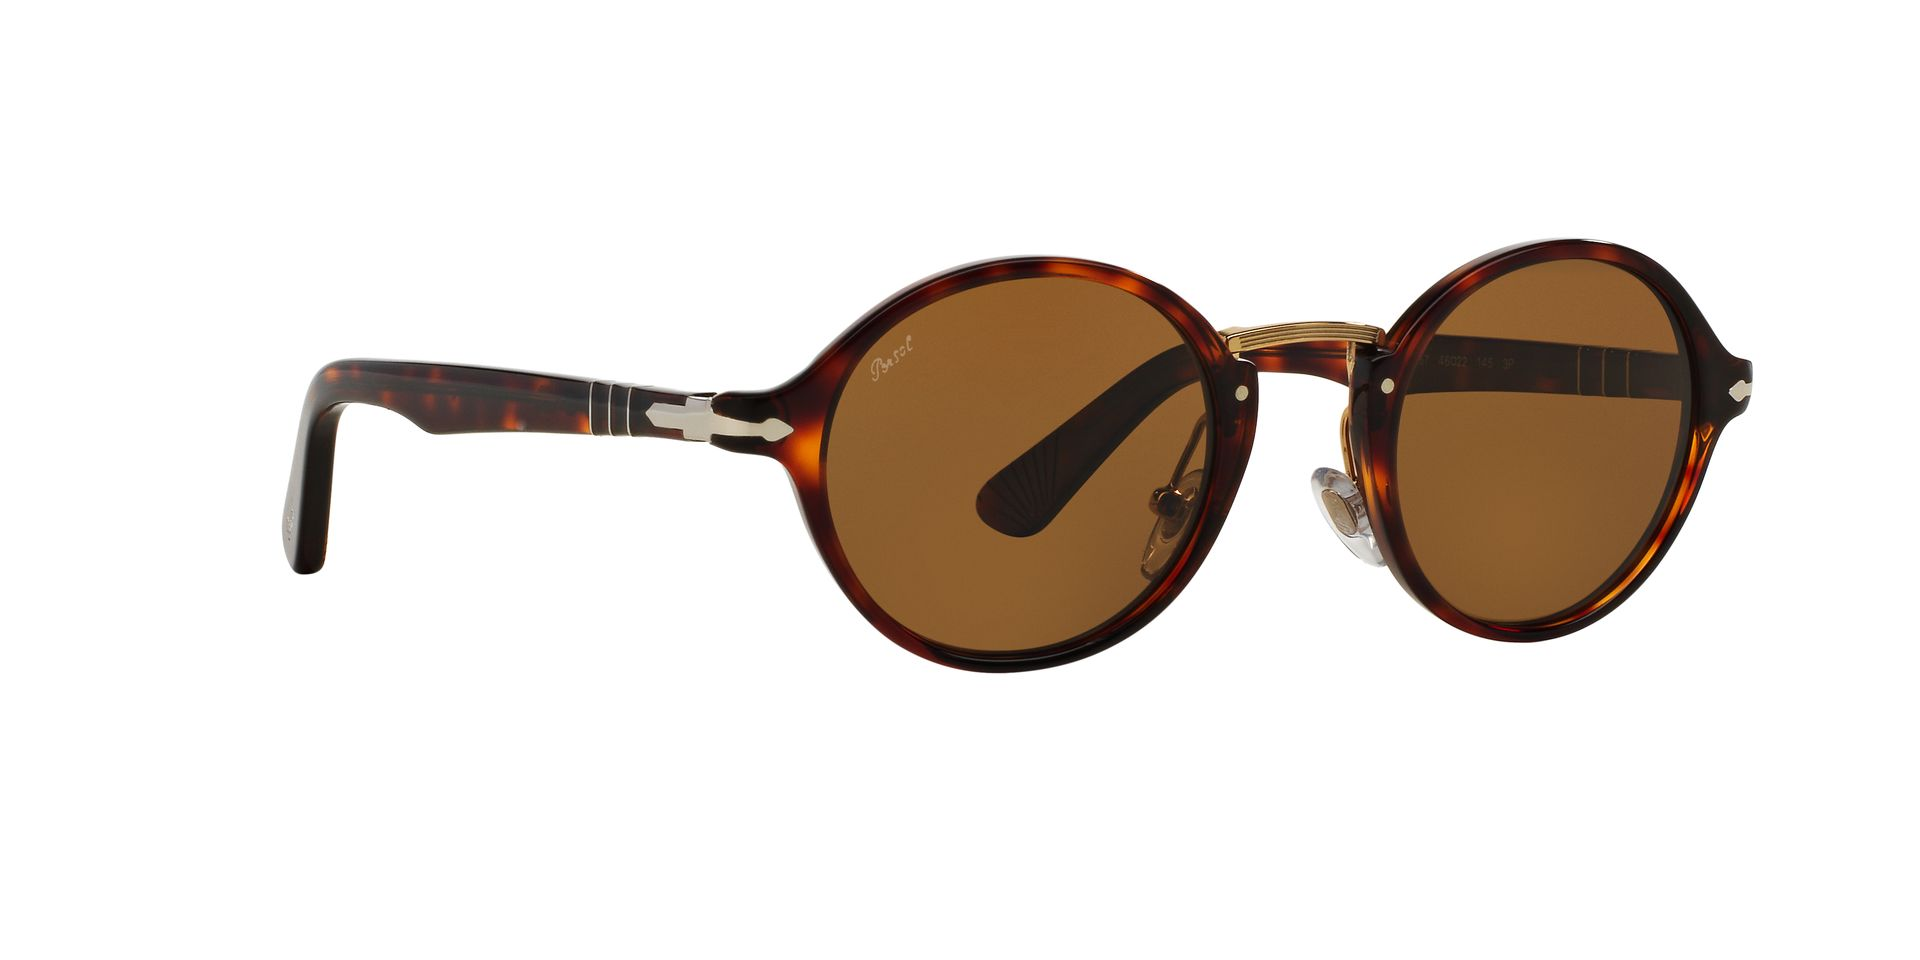 8b5ace92df Brillenchic-onlineshop in Berlin - Persol PO 3129S 3129 24 57 ...